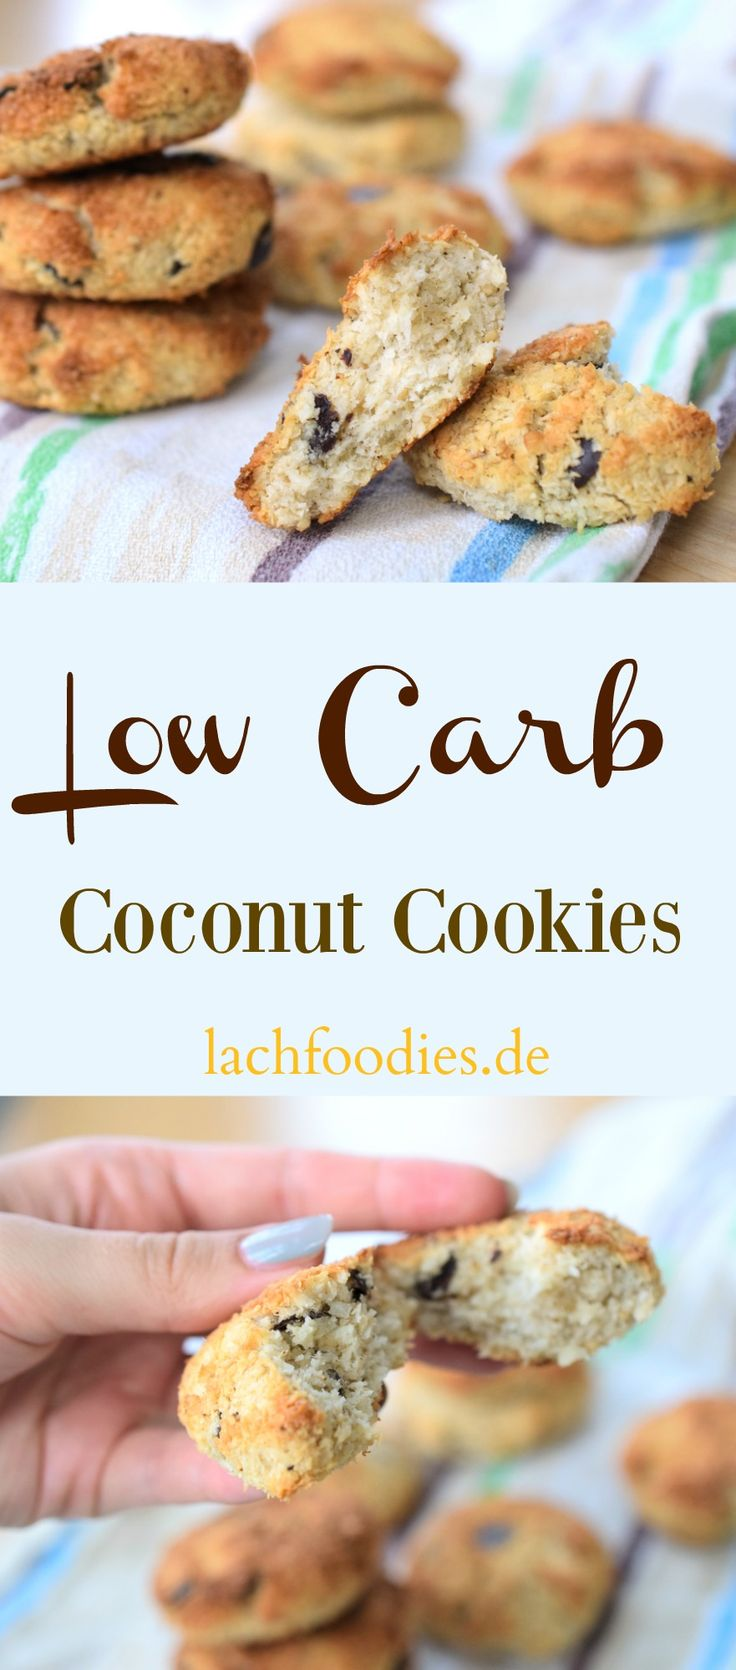 Low carb coconut cookies. Enjoy your sugarfree sweet treats. | Ein leckeres Low Carb Dessert für eine gesunde Ernährung.